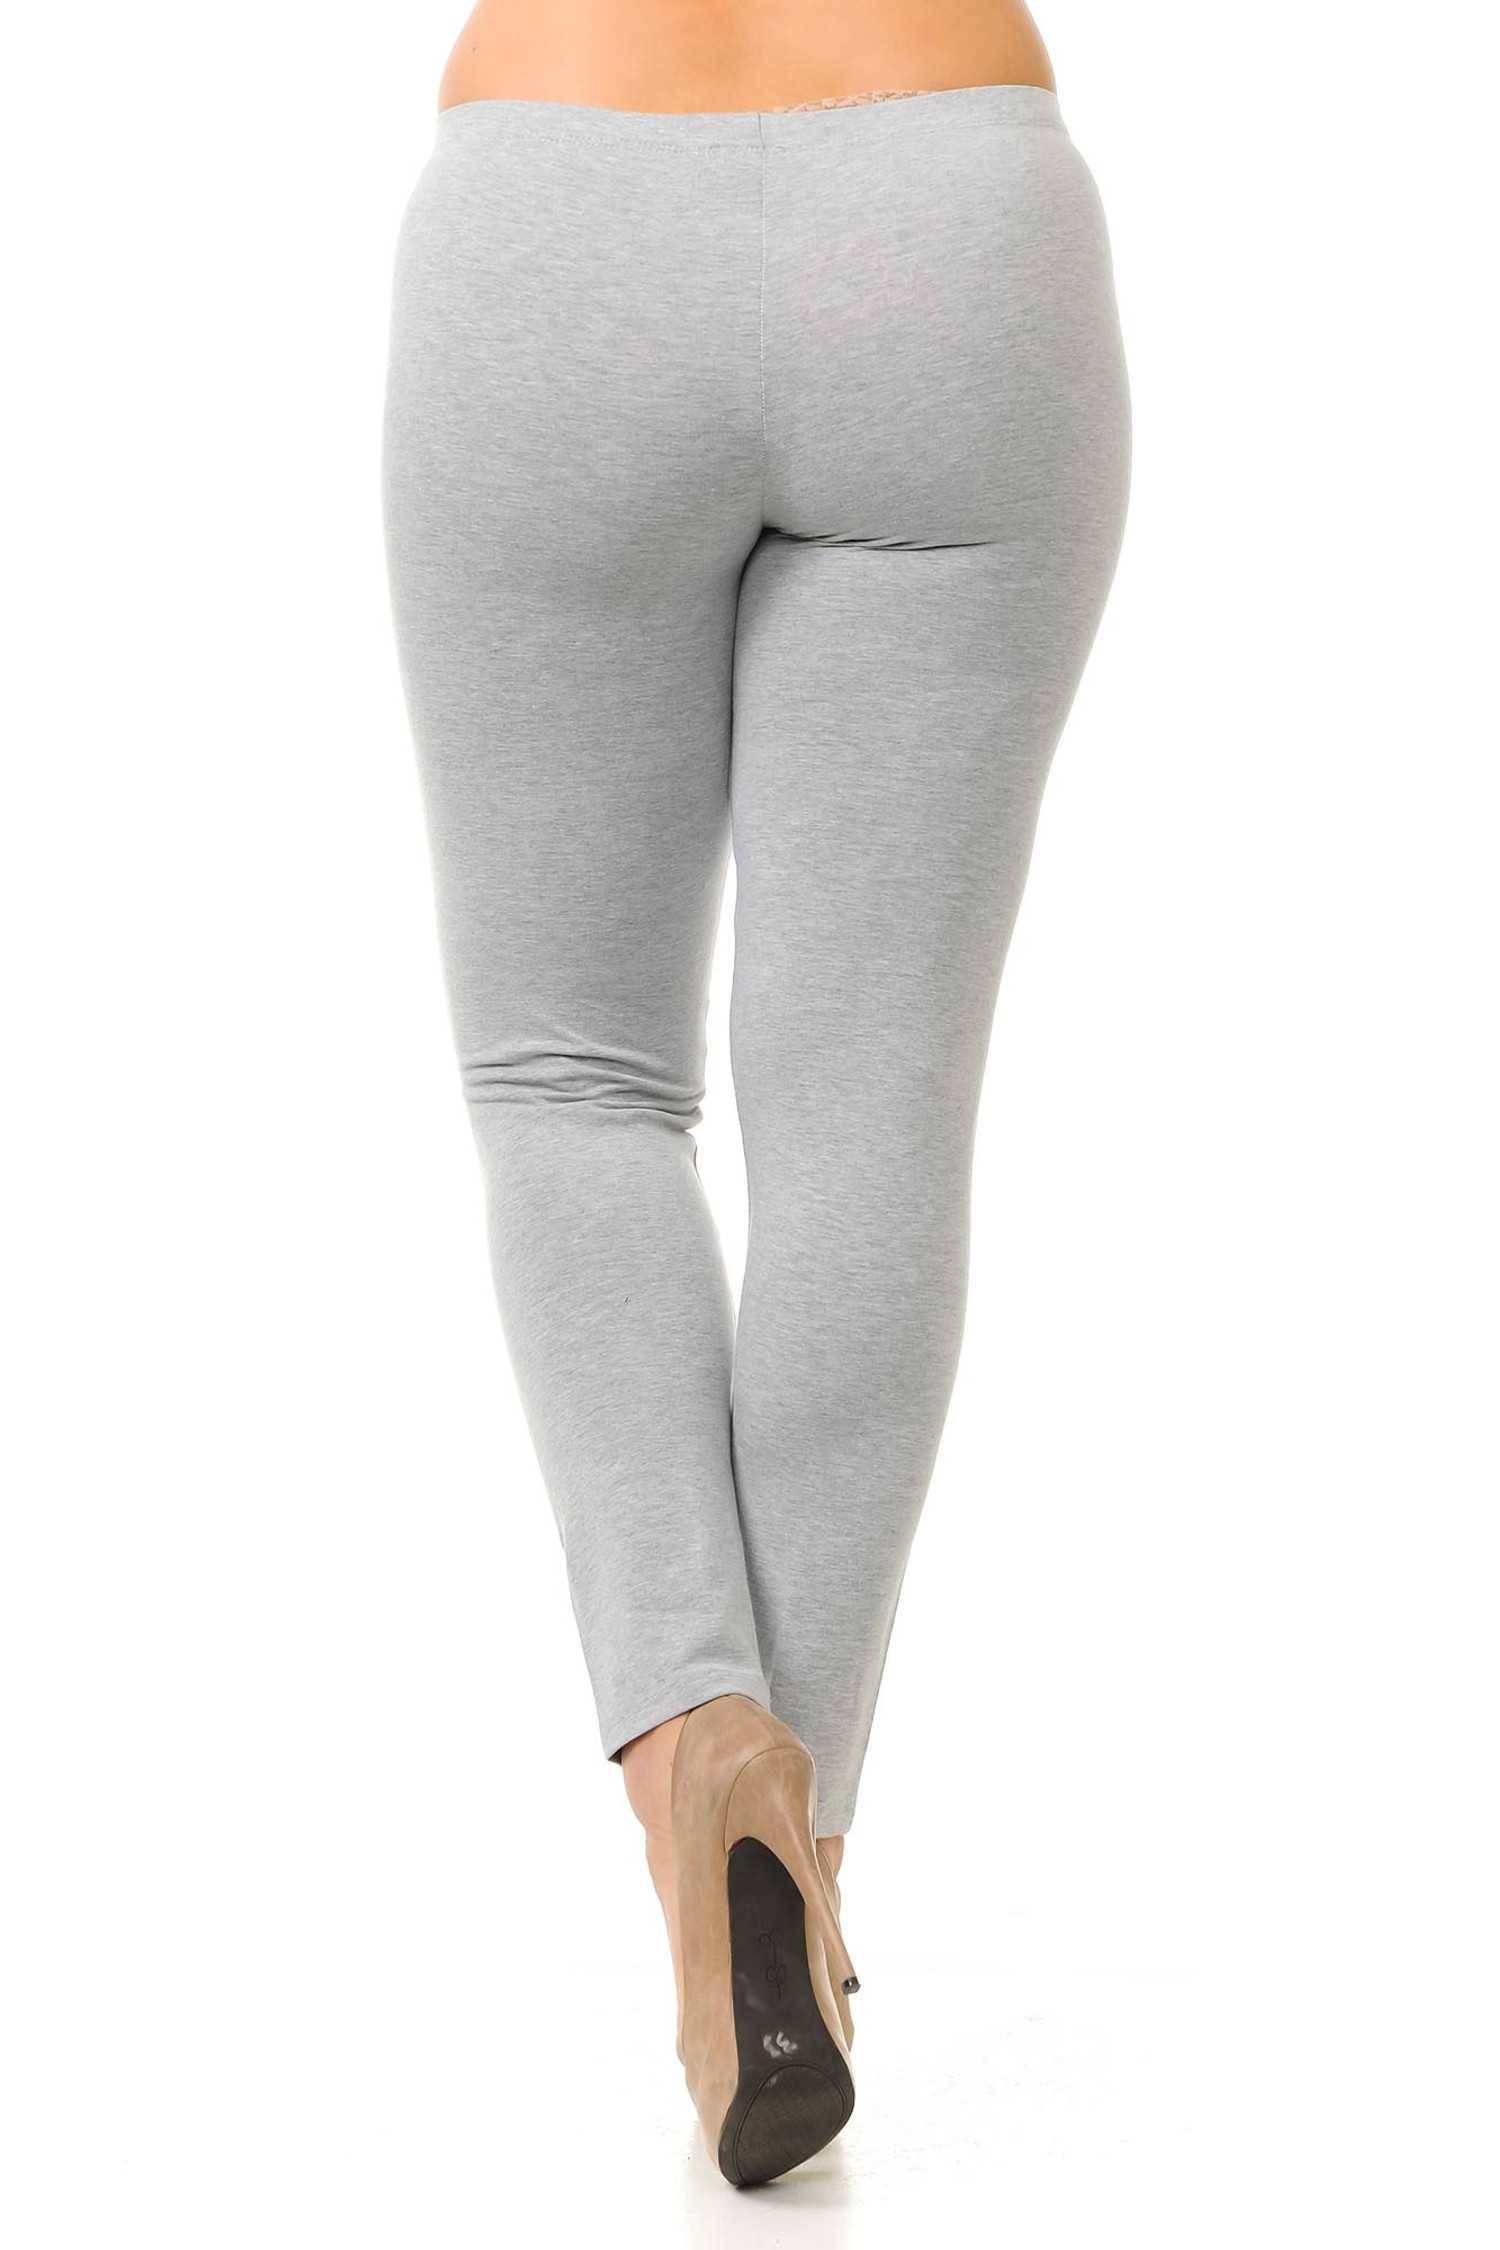 Rear image of heather gray full length USA cotton plus size leggings.